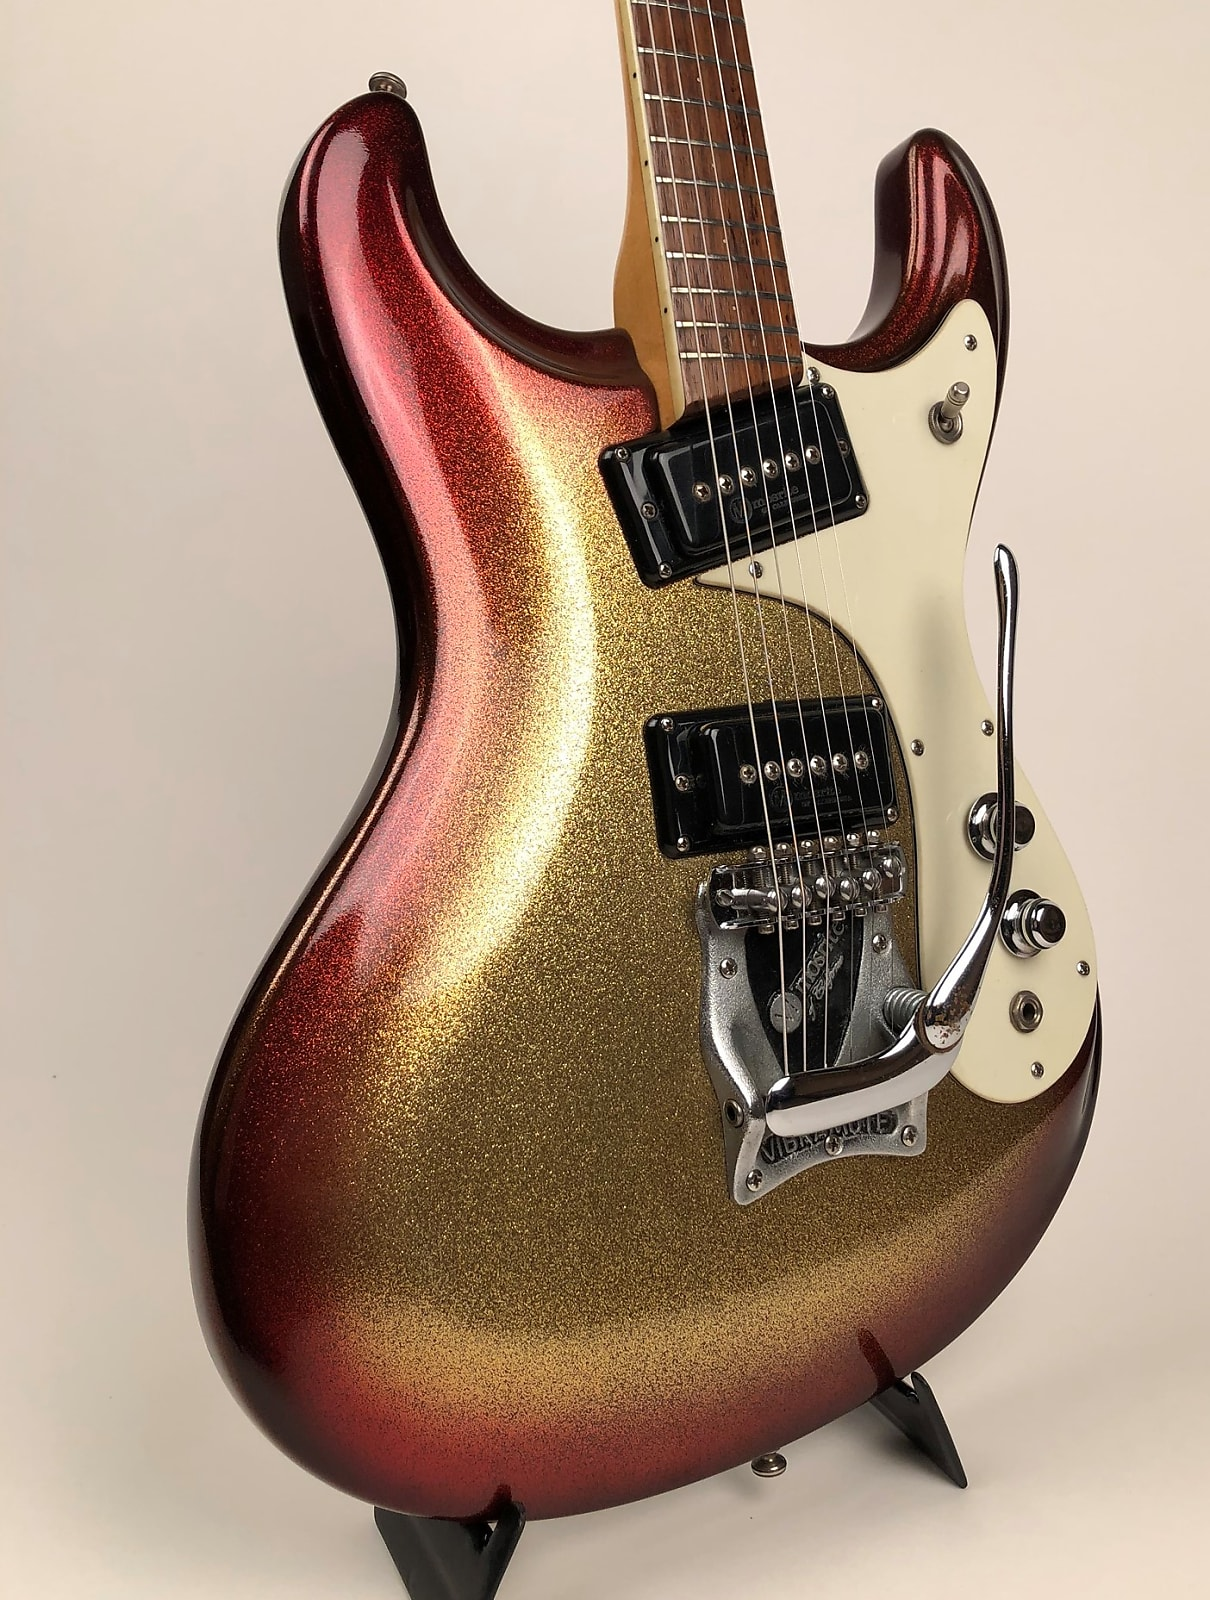 Very Rare 1965 Mosrite Ventures Vibramute in Custom Color Sparkle Sunburst & Original Hardshell Case